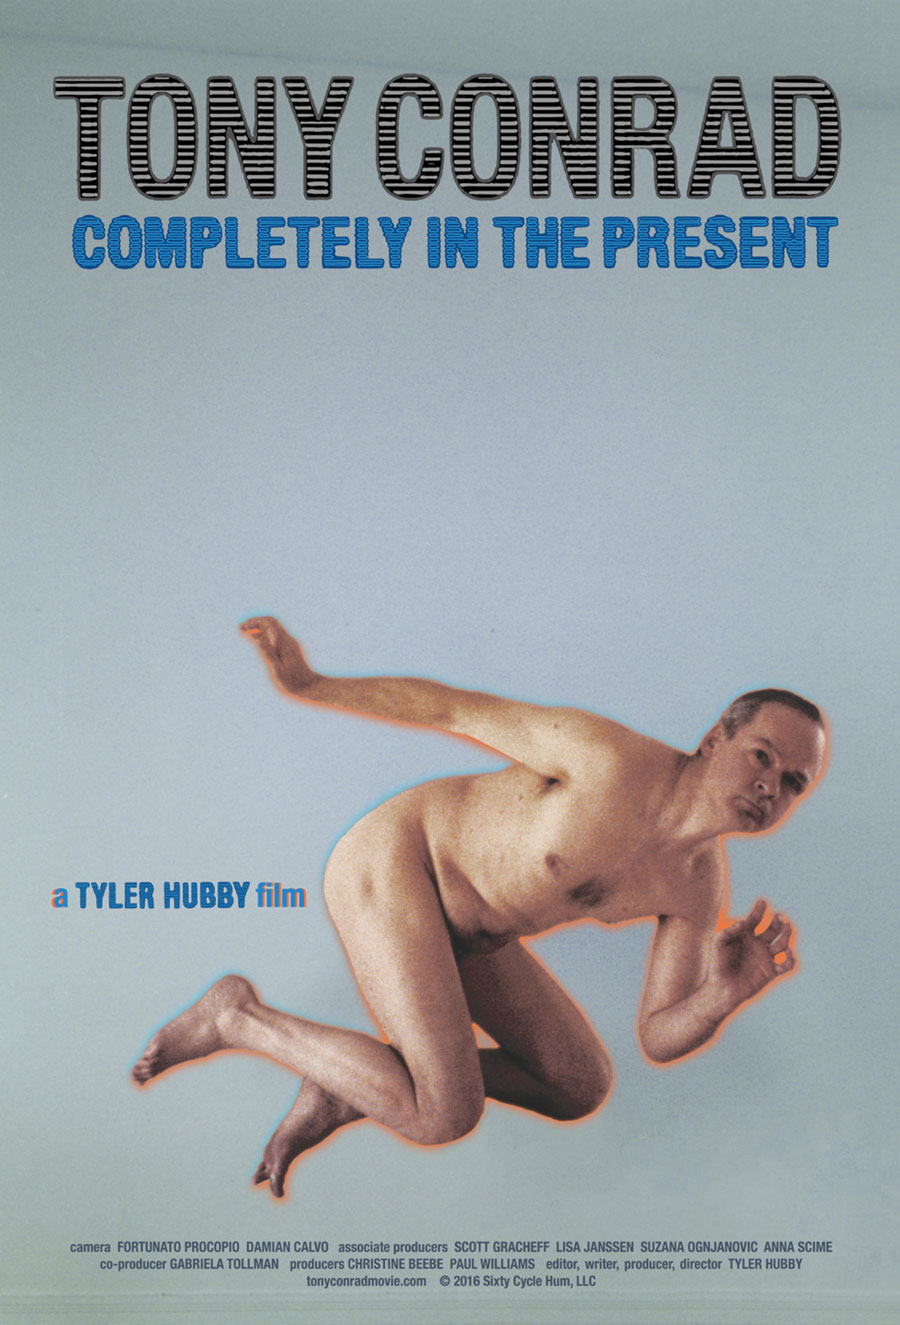 tpny-conrad-completely-in-the-present-film-poster-tate-modern